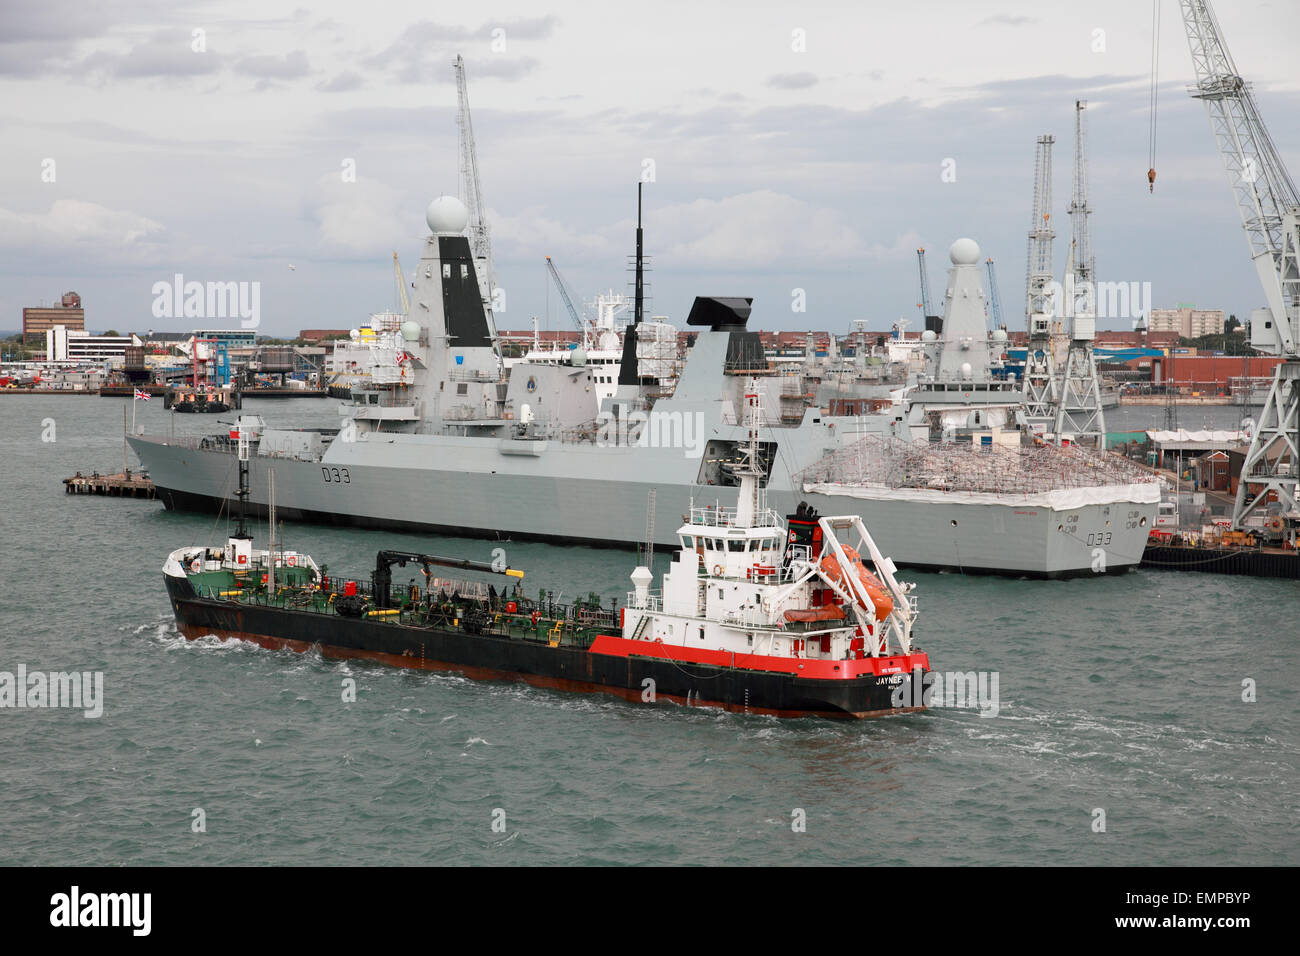 Oil products tanker Jaynee W and D33 HMS Dauntless in Portsmouth Harbour, Hampshire, England, UK - Stock Image